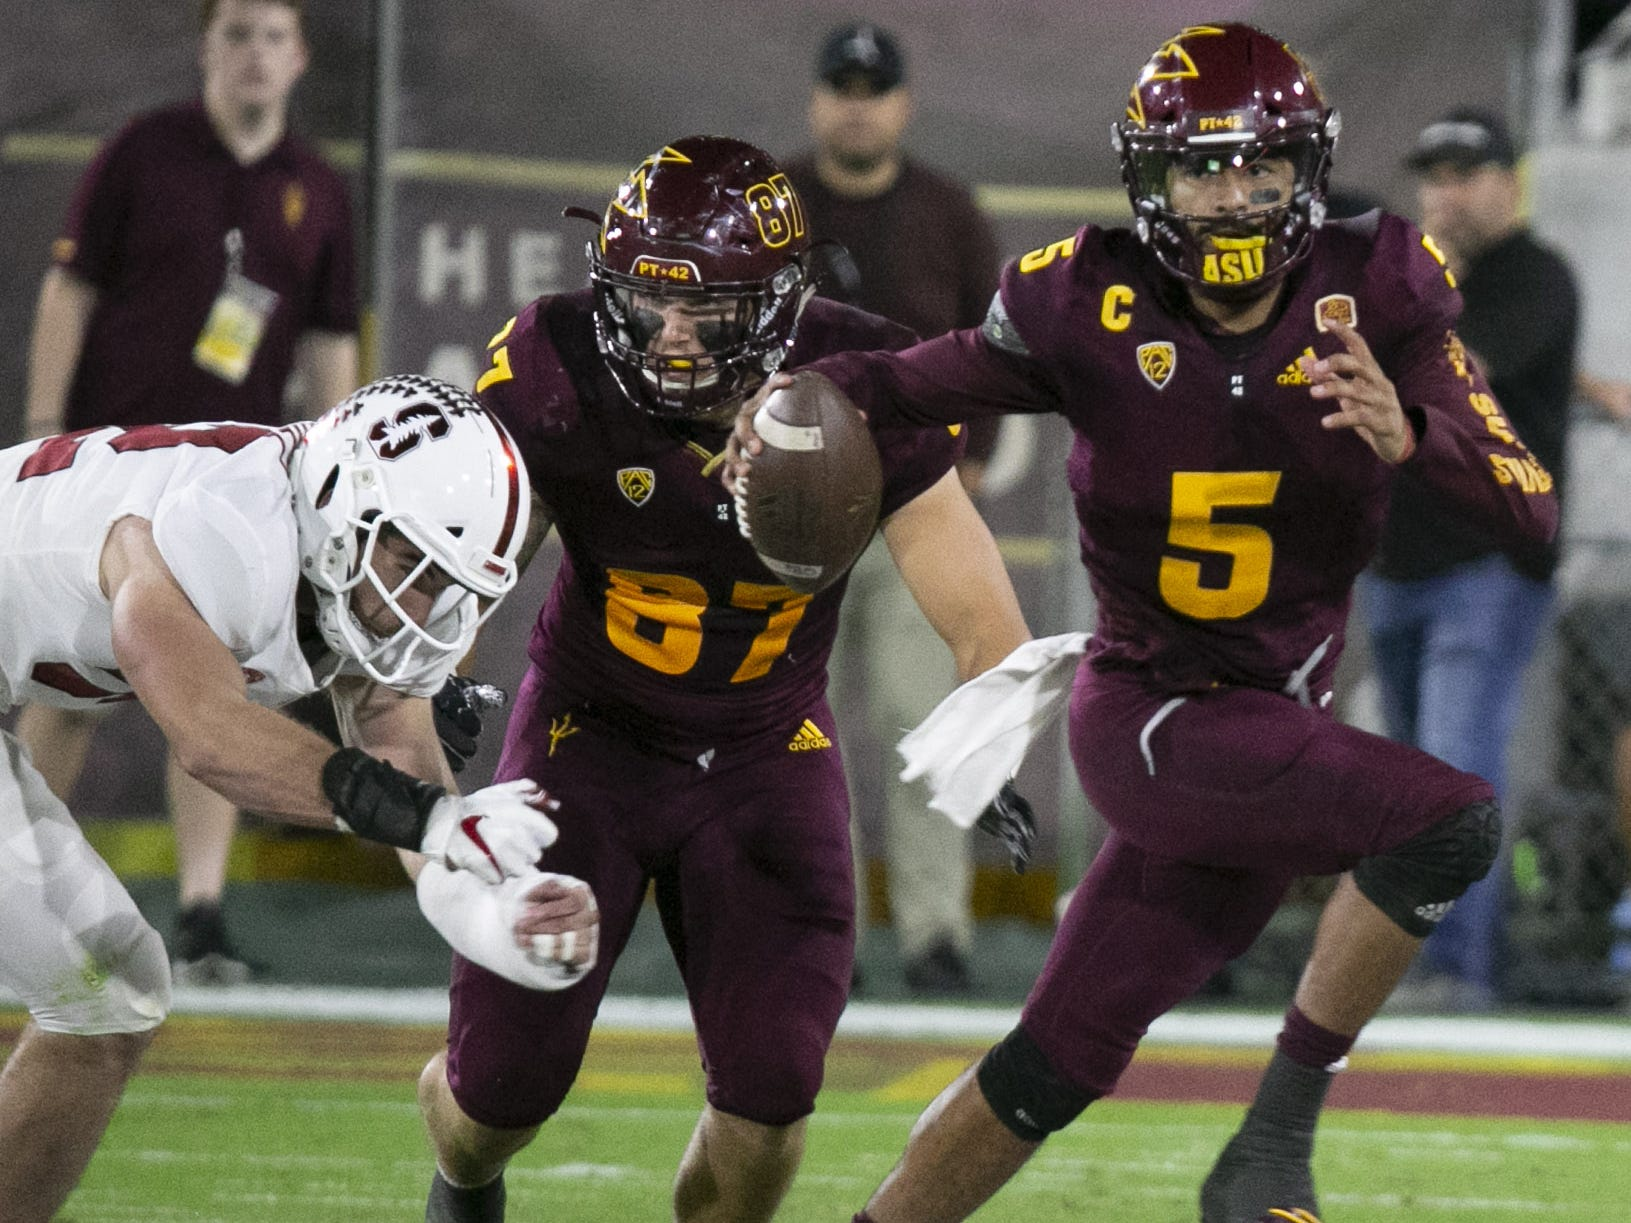 ASU quarterback Manny Wilkins carries the ball against the Stanford defense during the second quarter of the Pac-12 college football game at Sun Devil Stadium in Tempe on October 18, 2018.